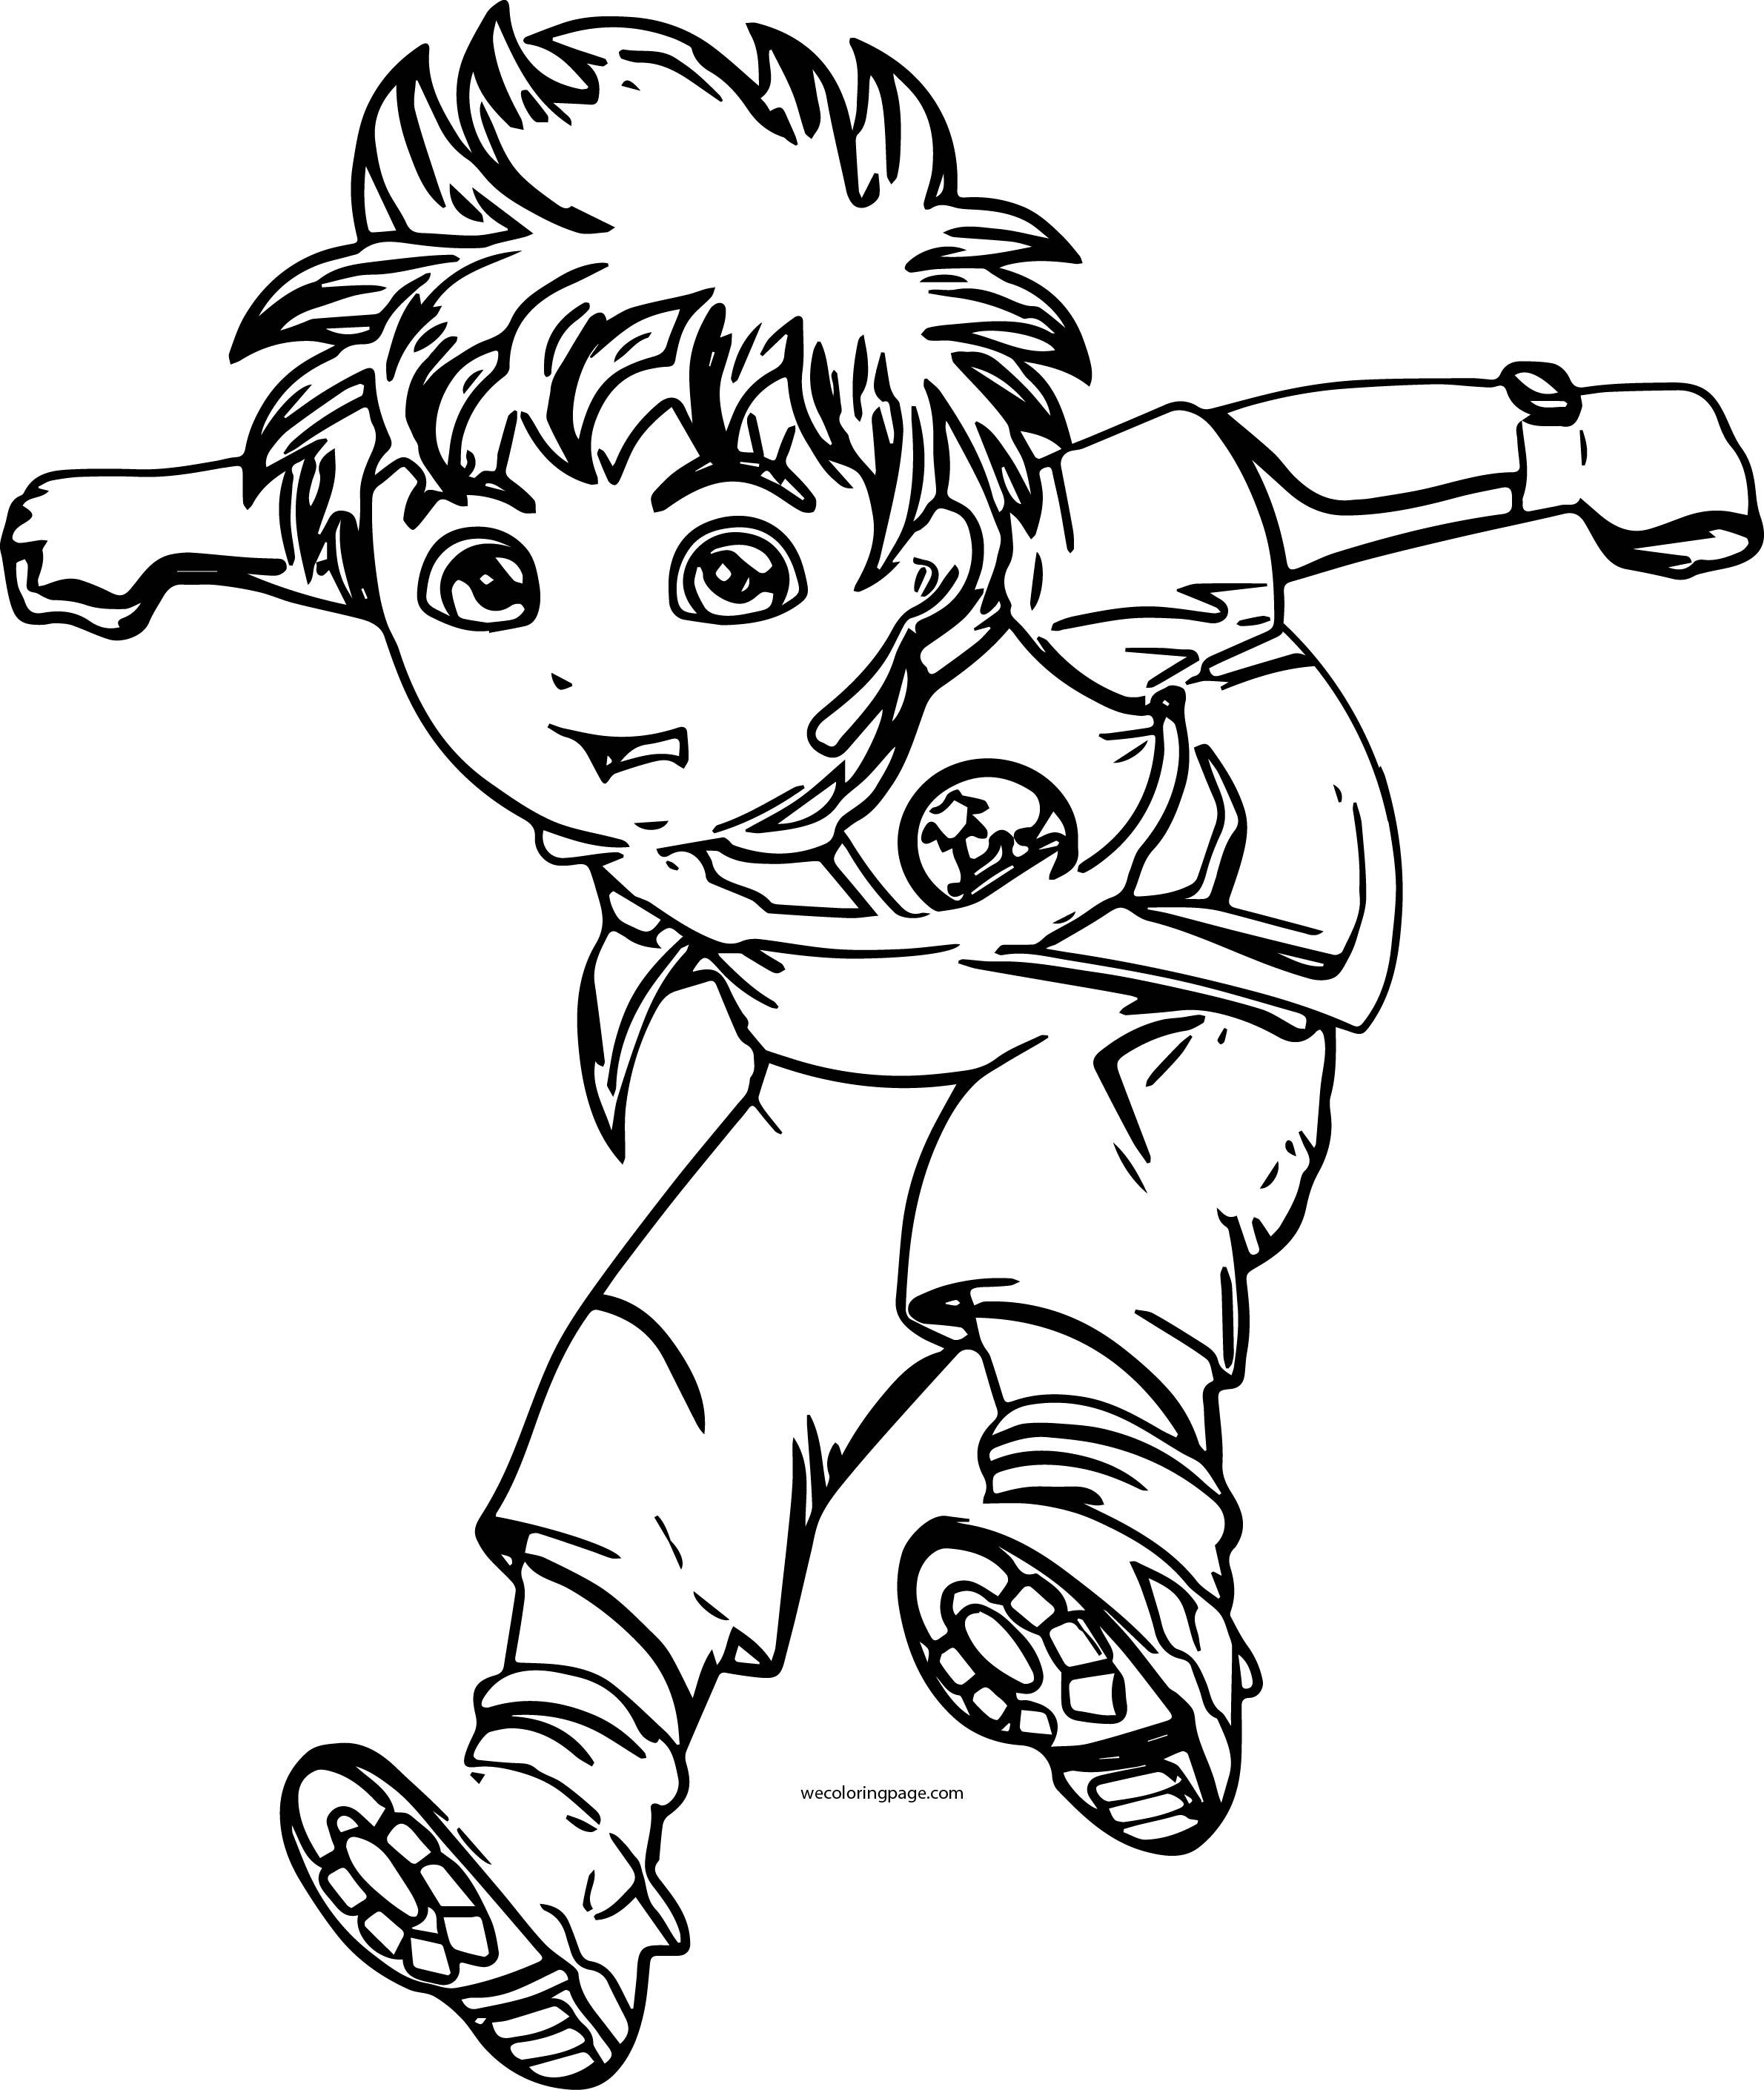 diego coloring pages dora coloring pages diego coloring pages diego coloring pages